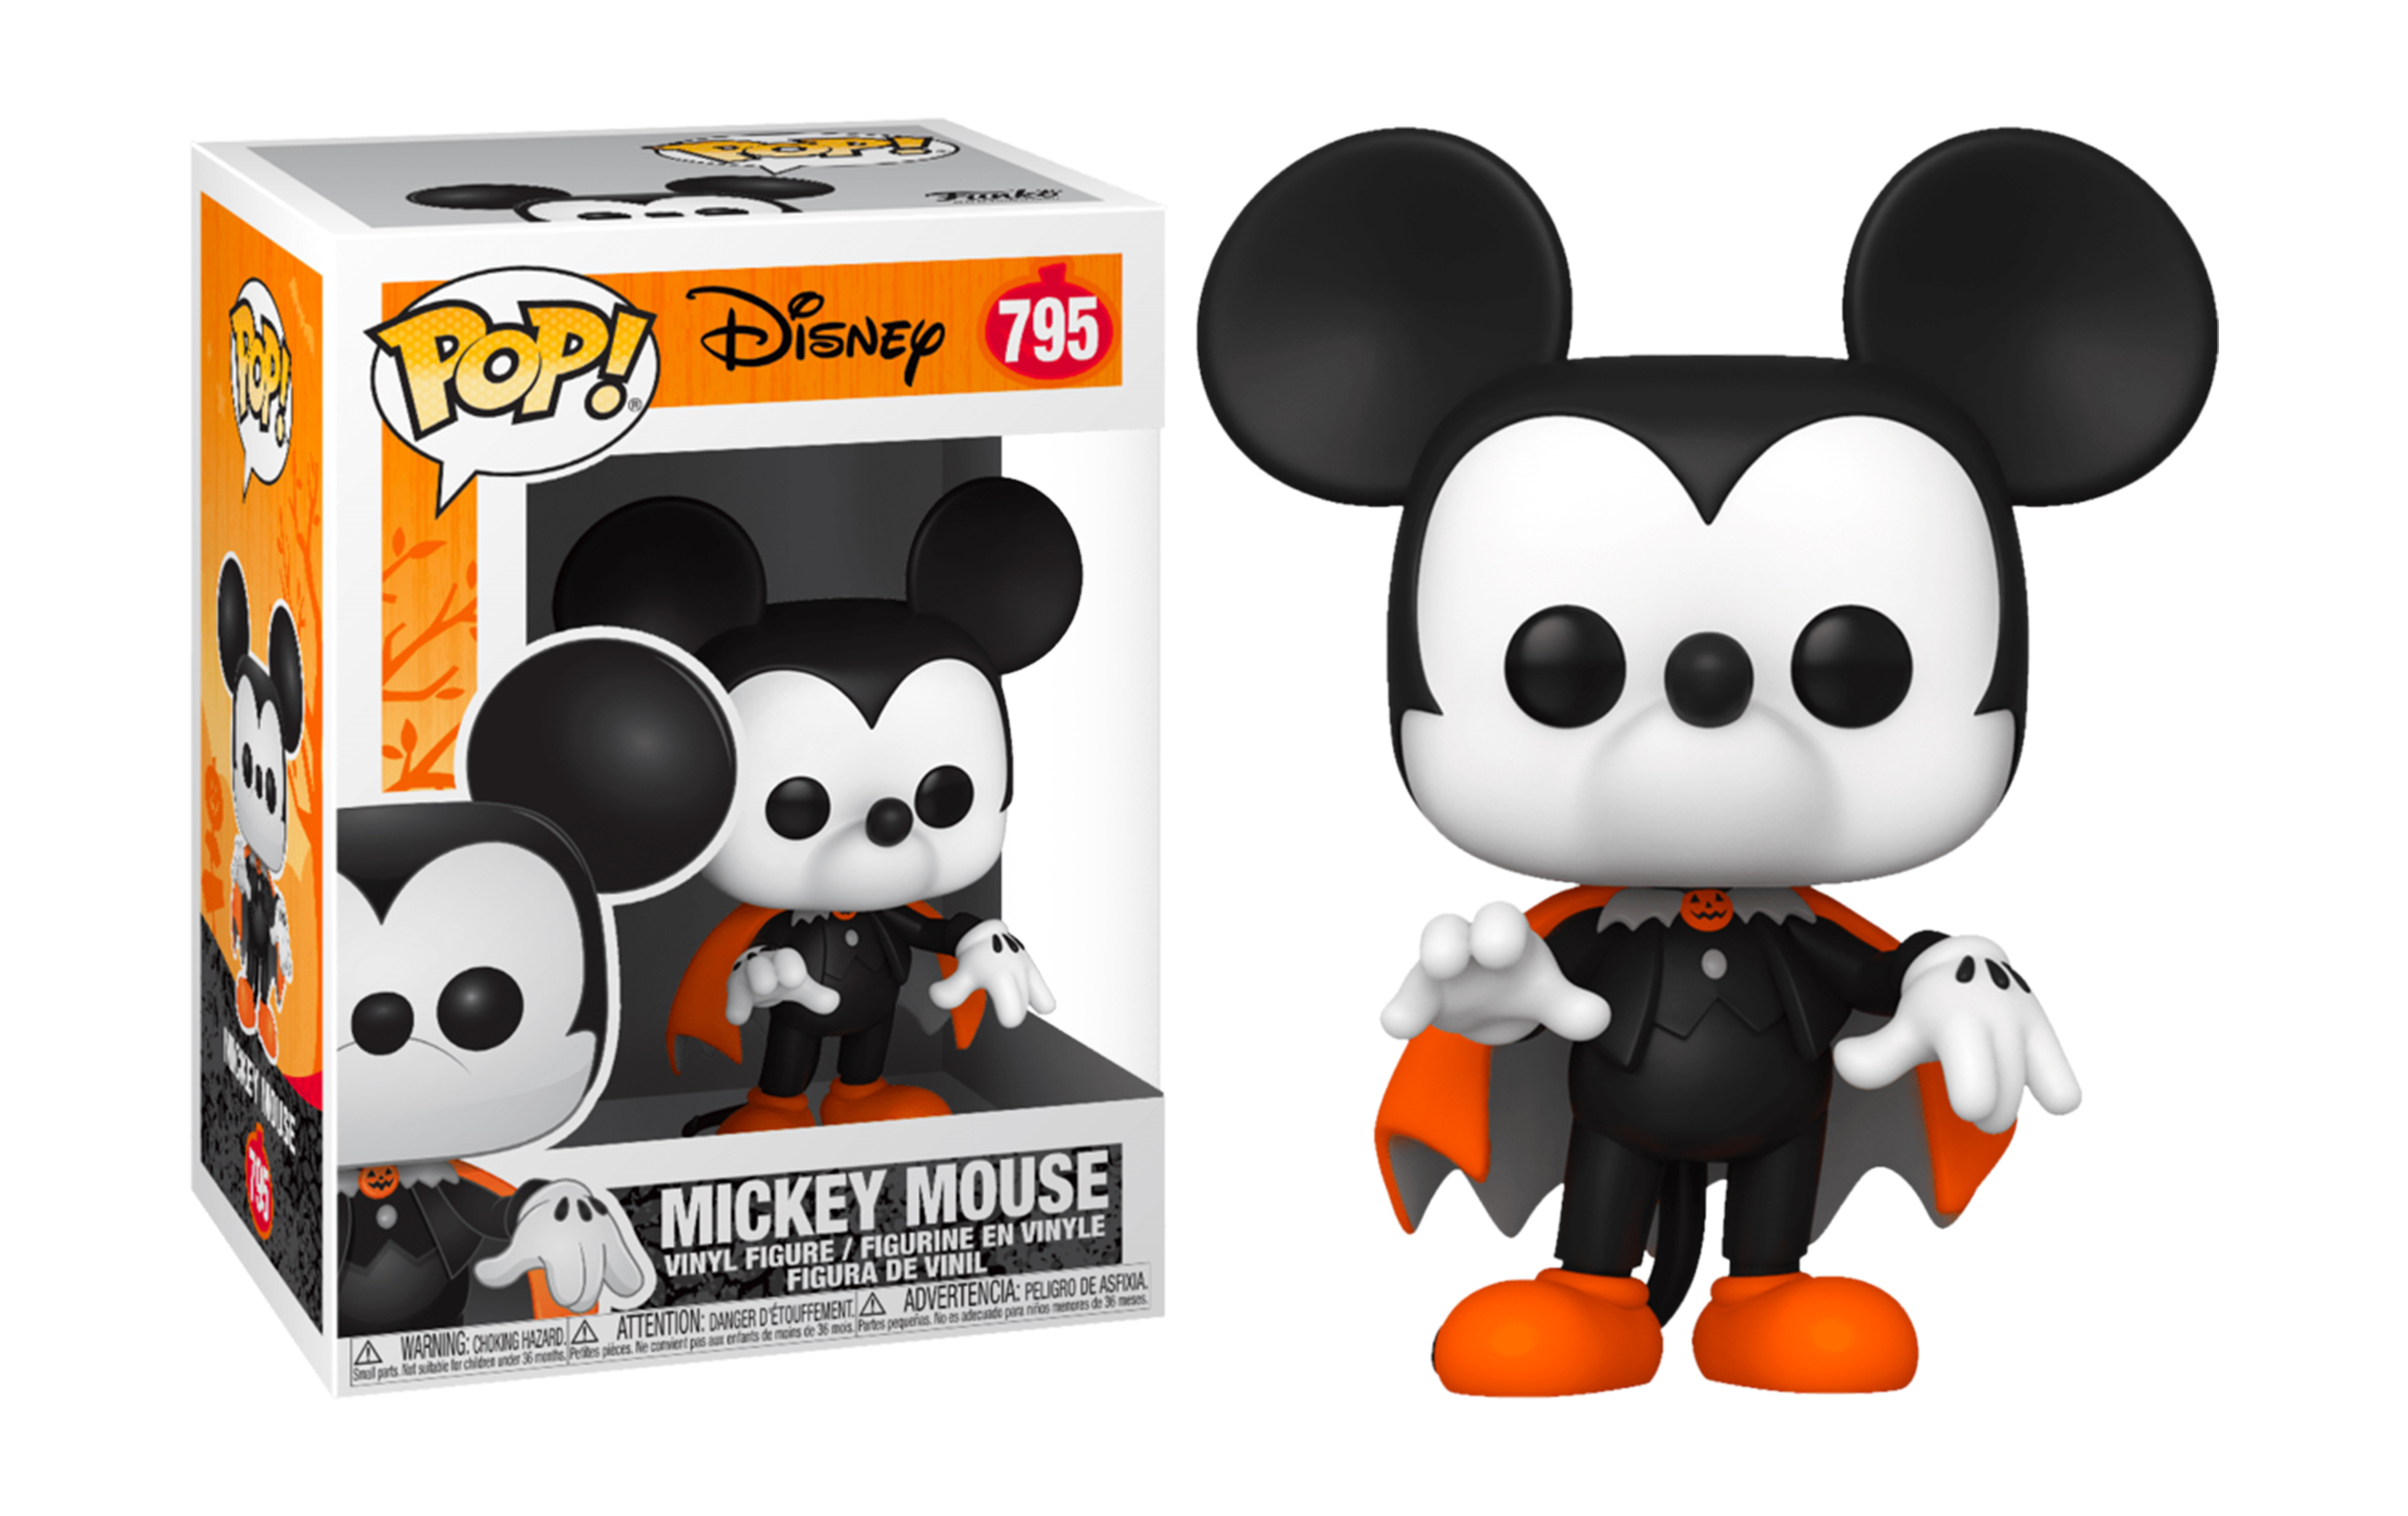 Disney Mickey Mouse Halloween 795 Funko POP Vinyl Figure